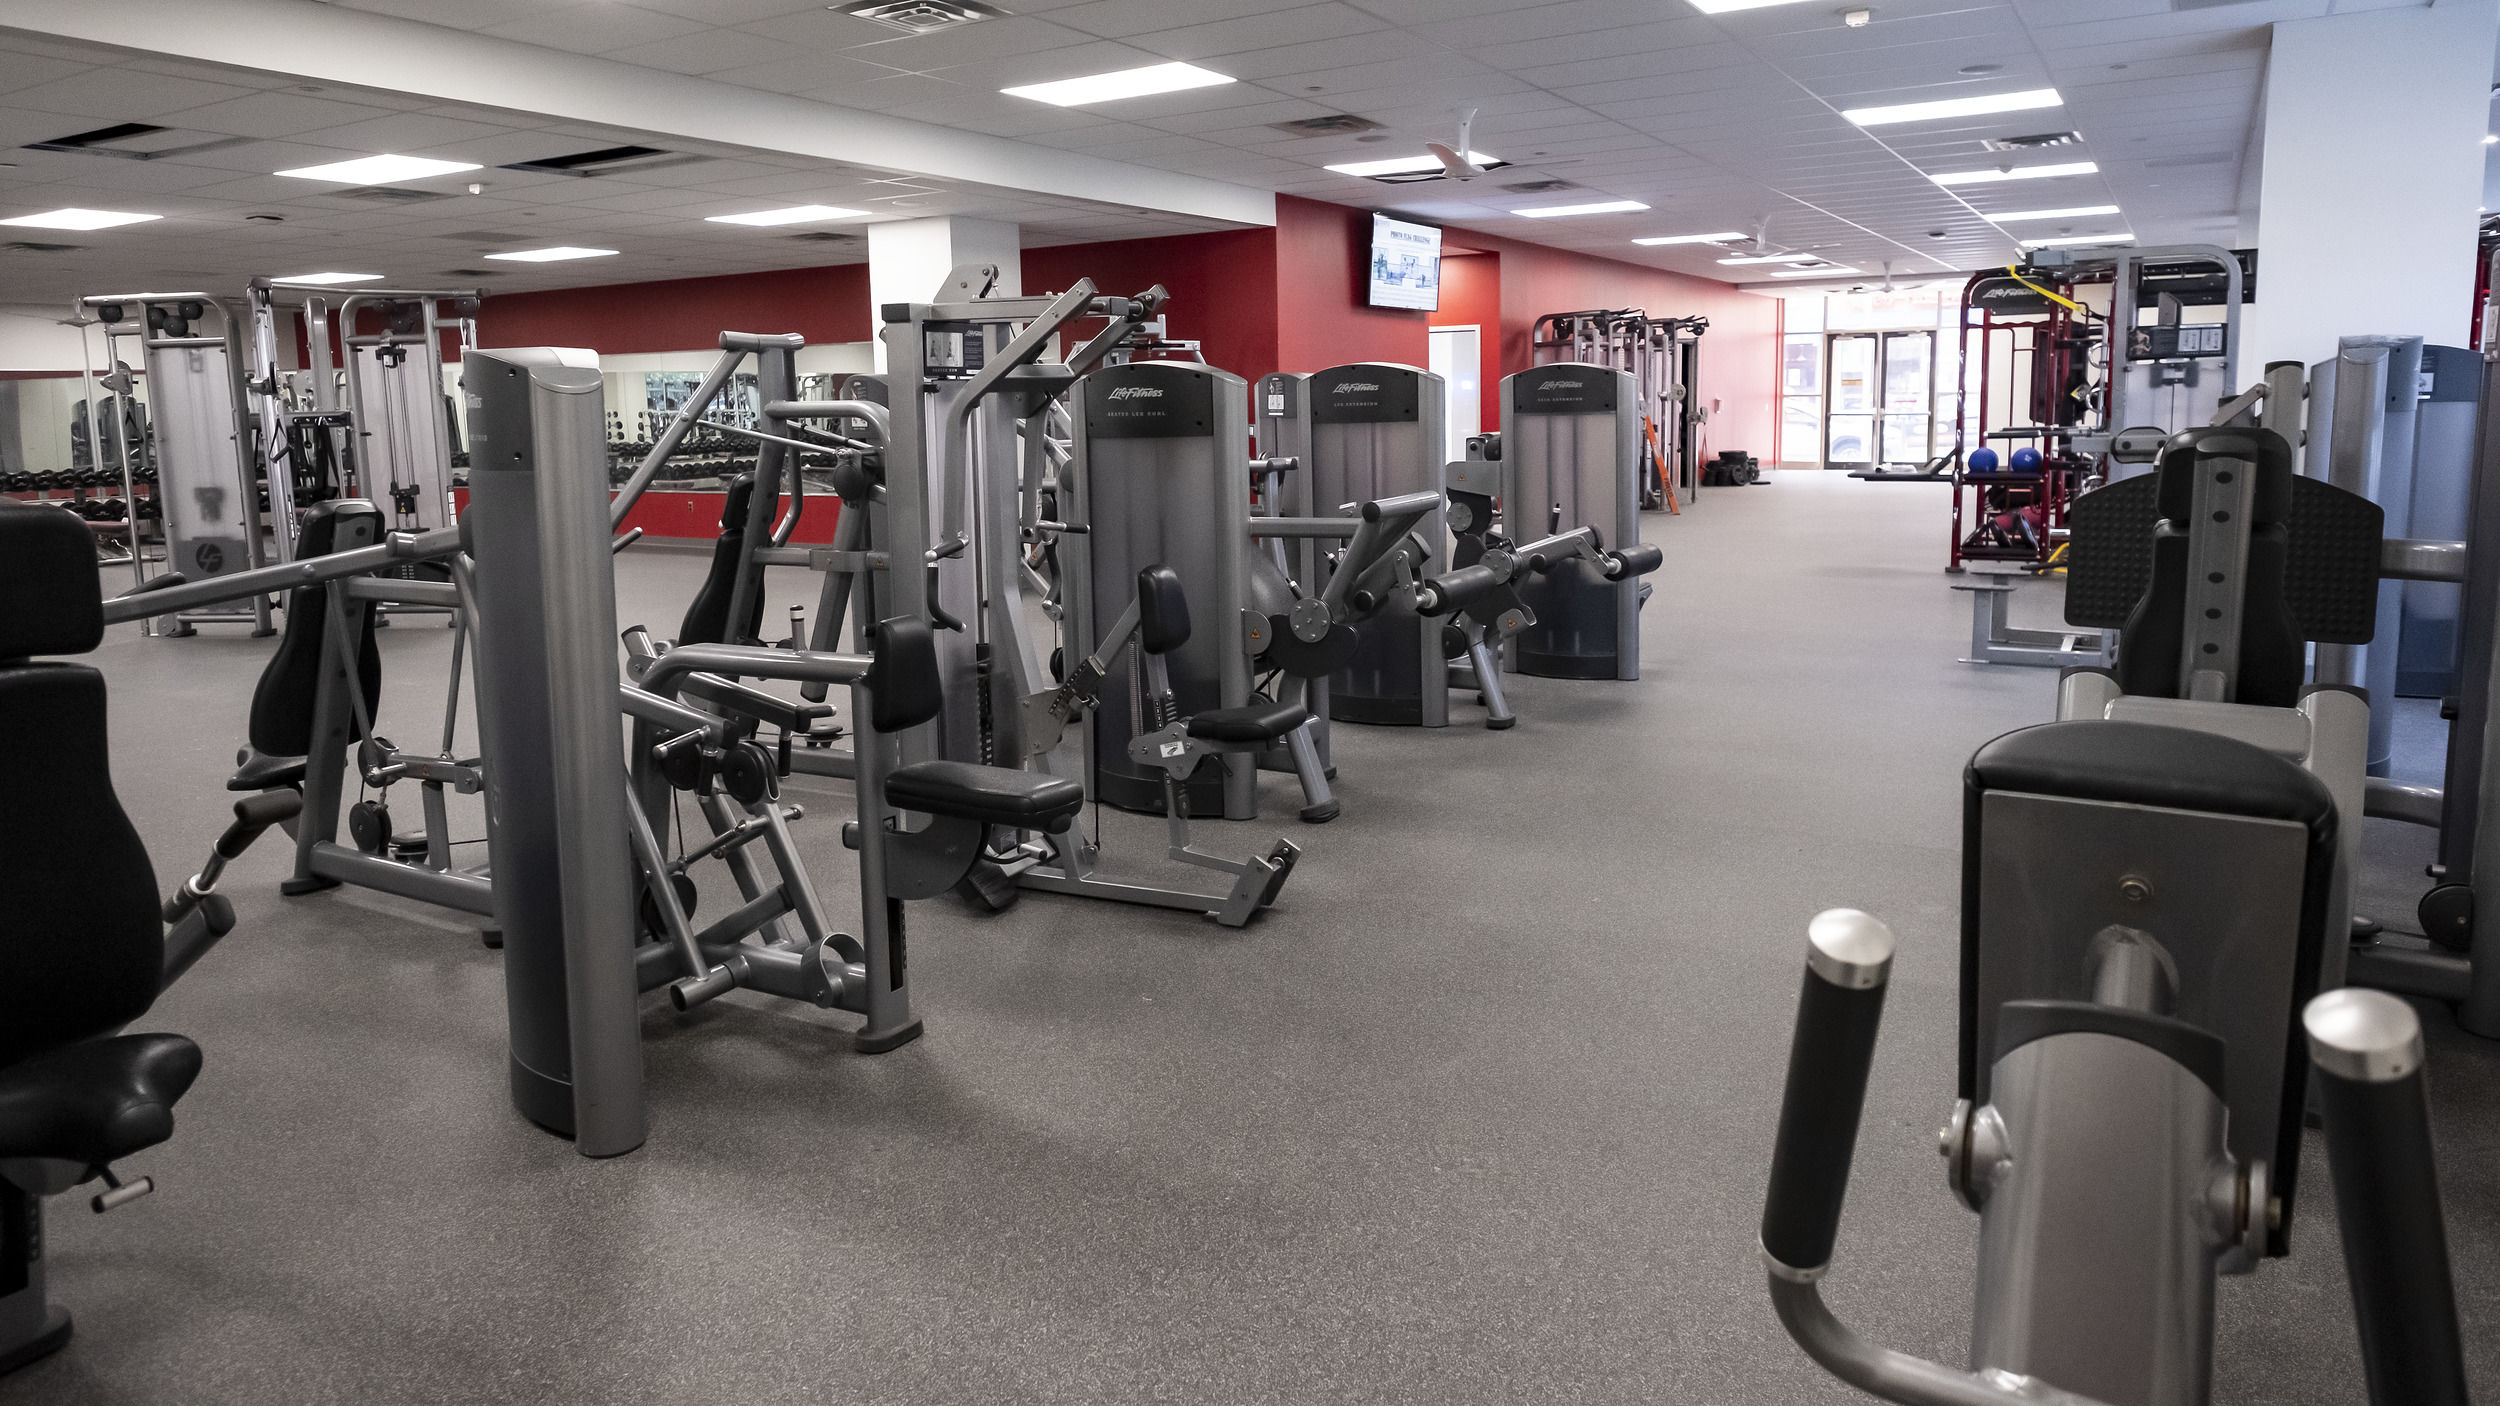 newly renovated IBC Student Recreation Center weight lifting stations.